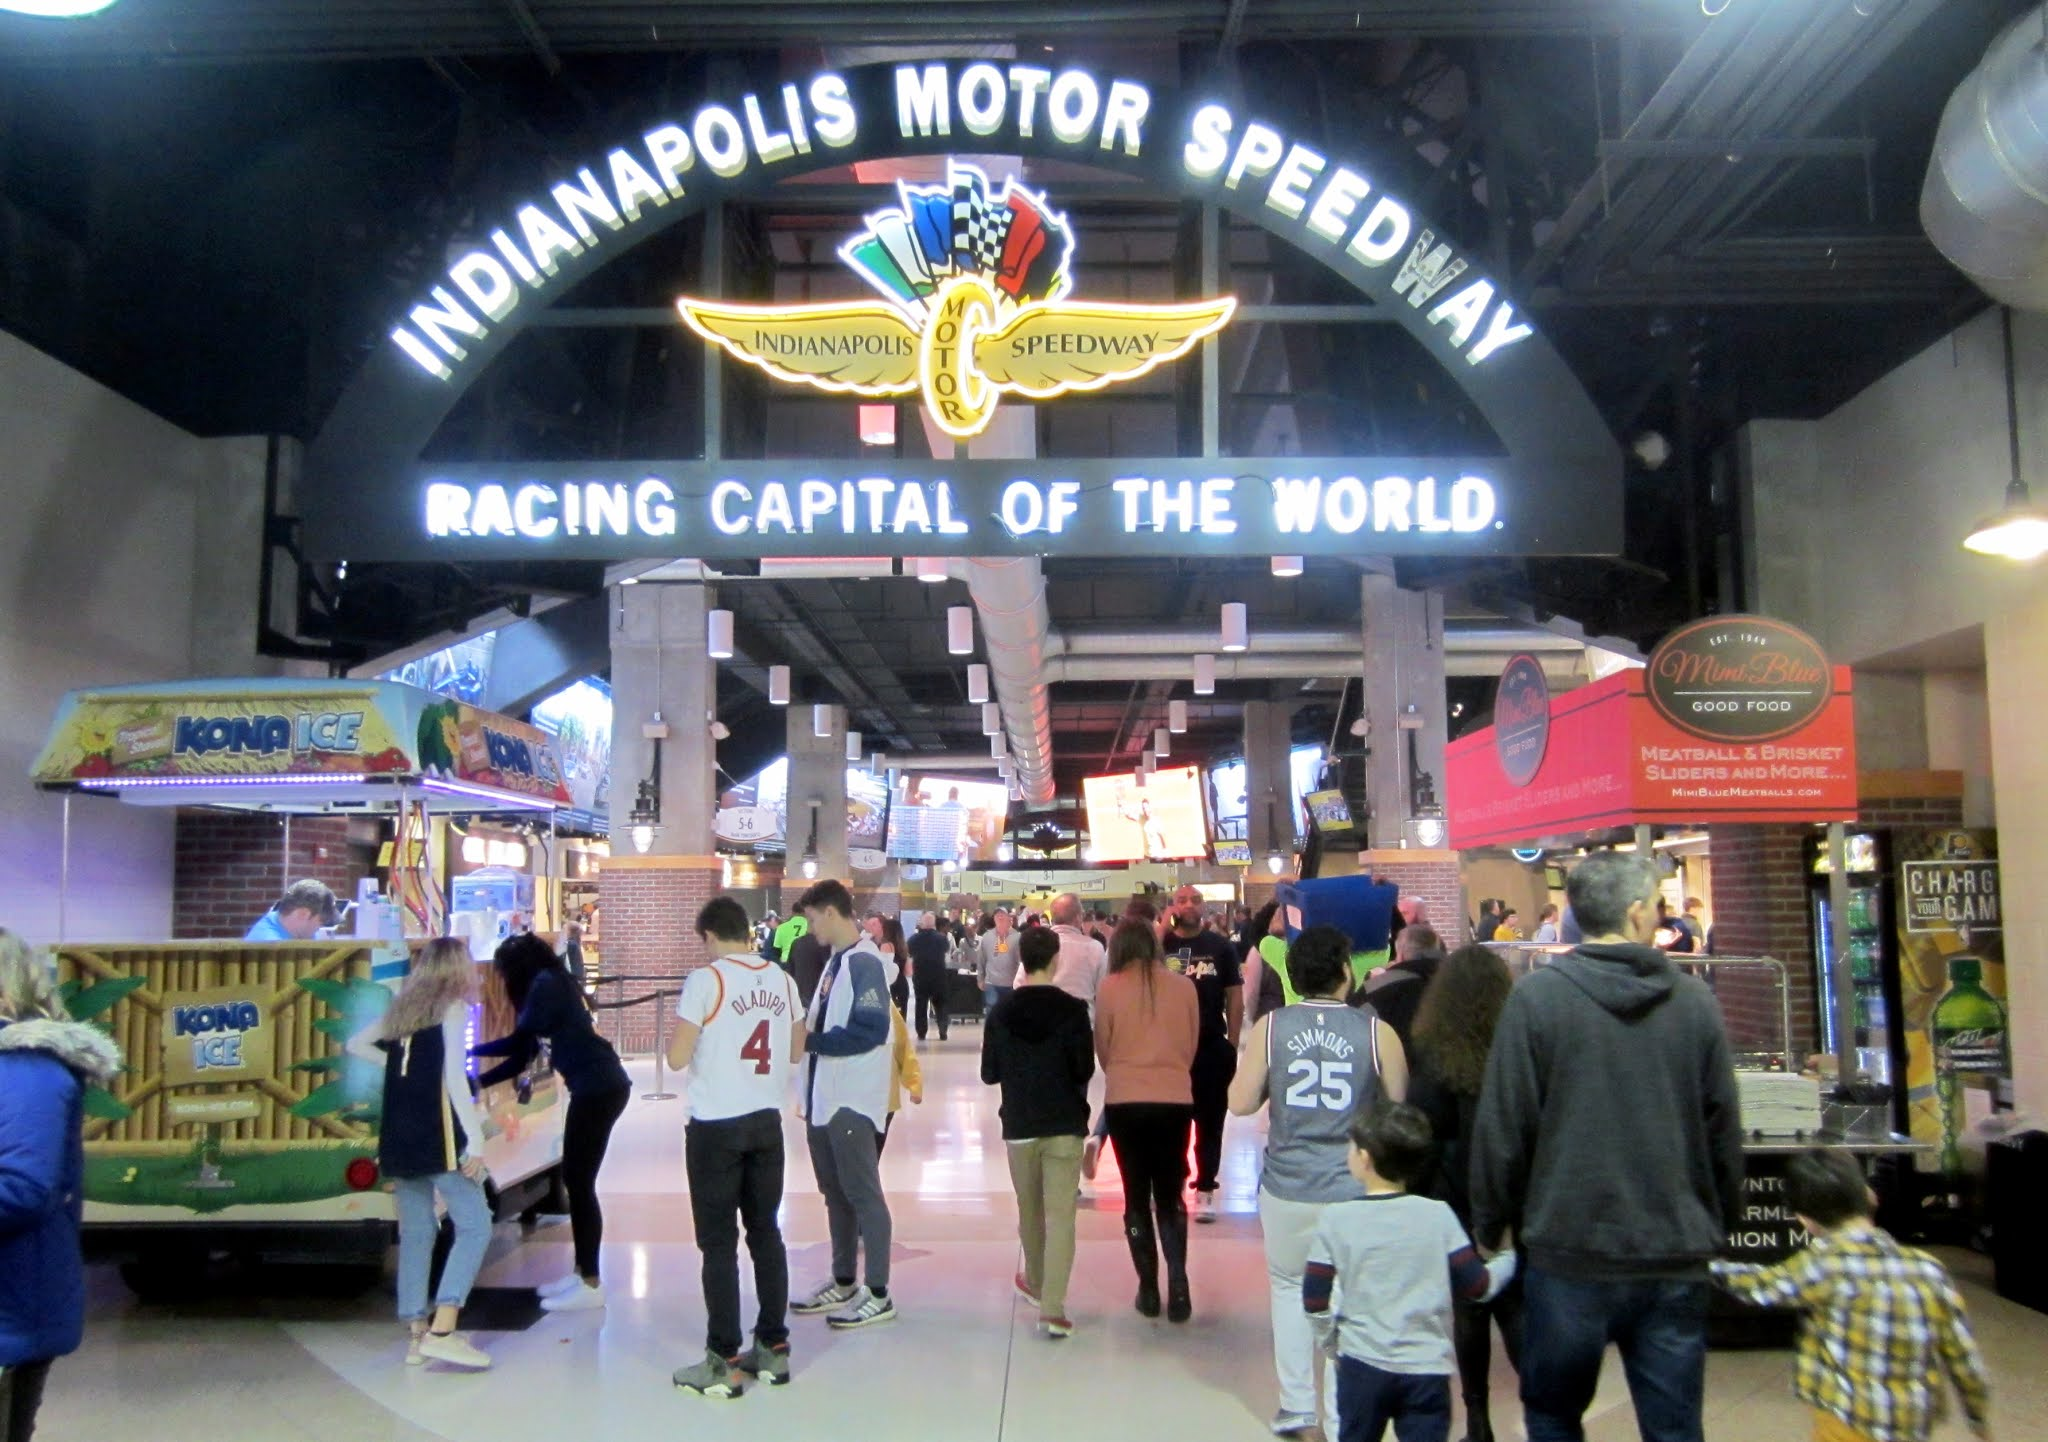 Indianapolis Motor Speedway themed area inside Bankers Life Fieldhouse